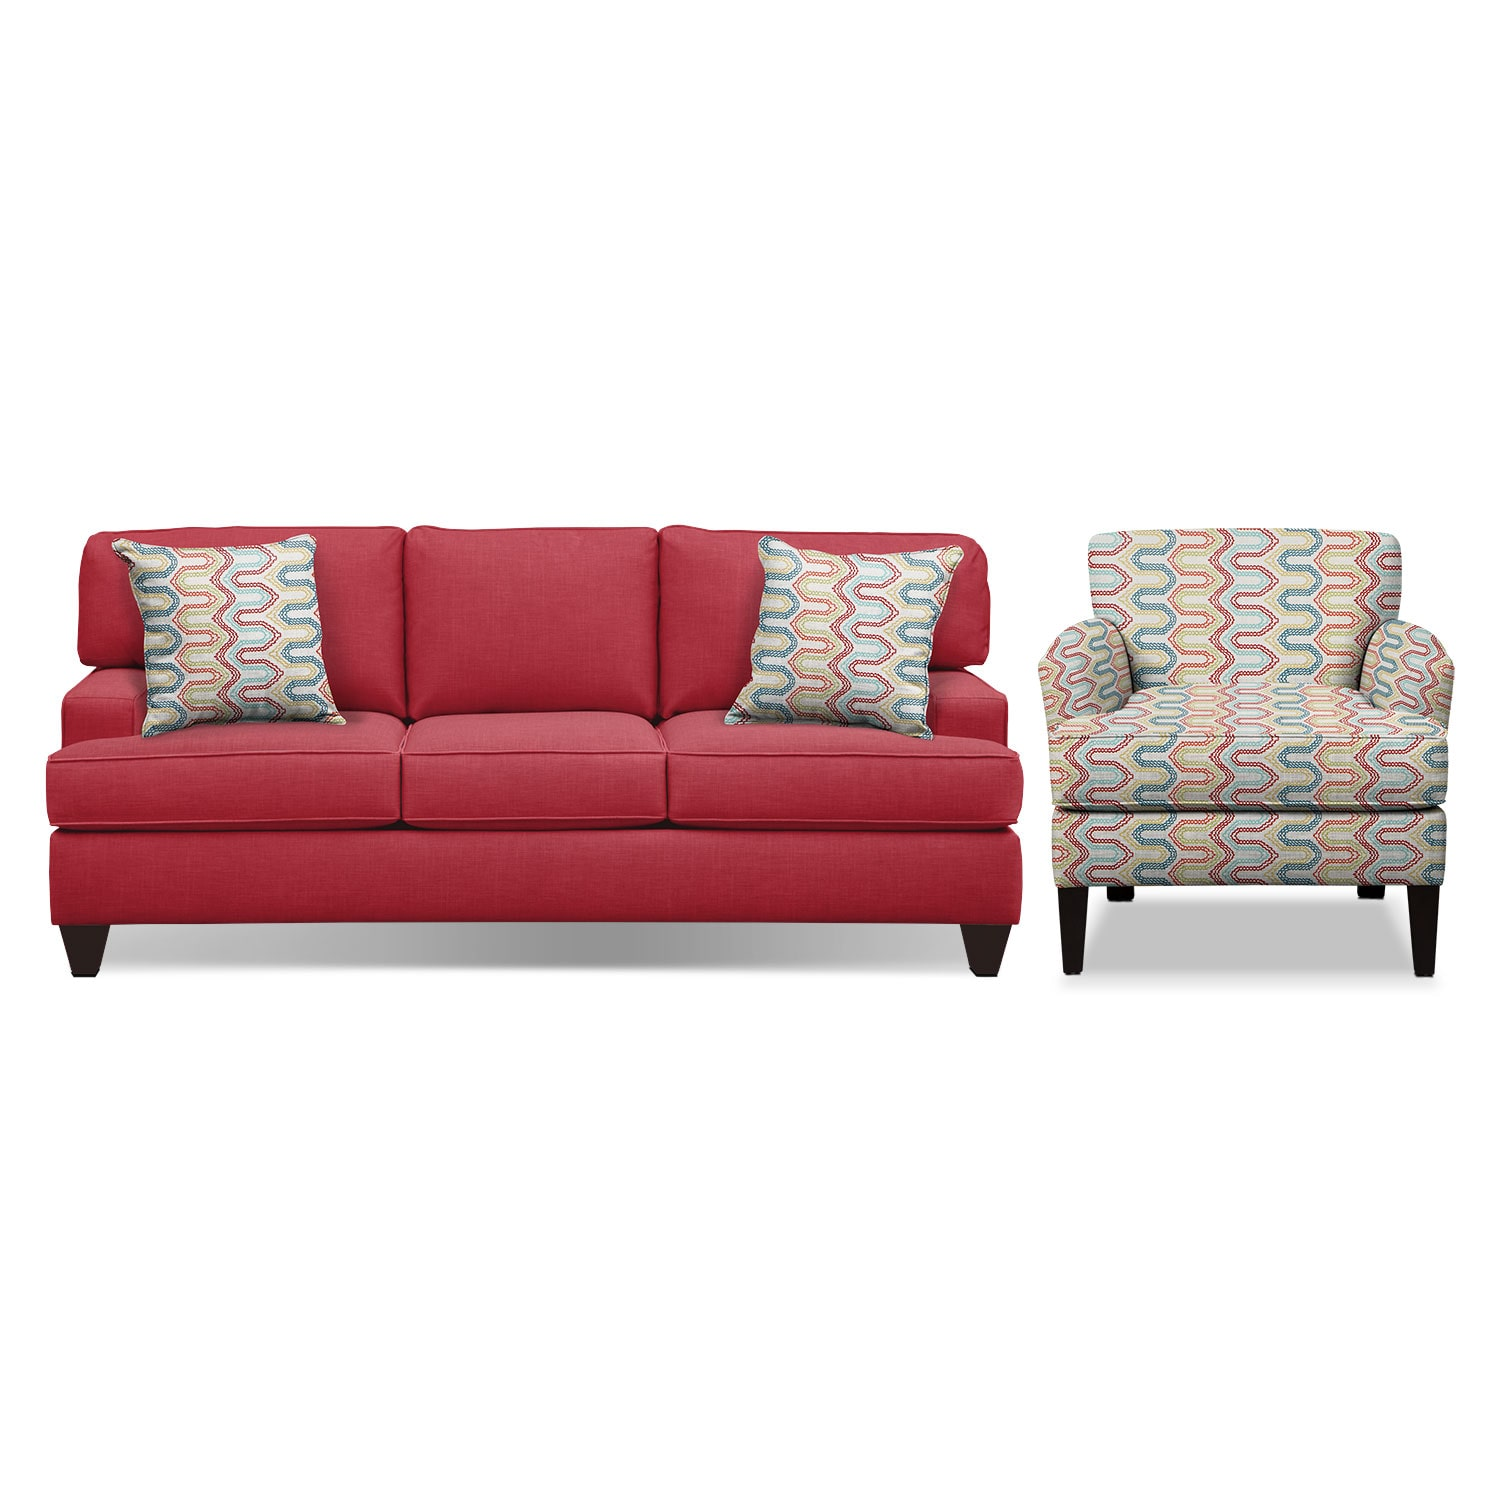 The Conner Red Living Room Collection American Signature Furniture